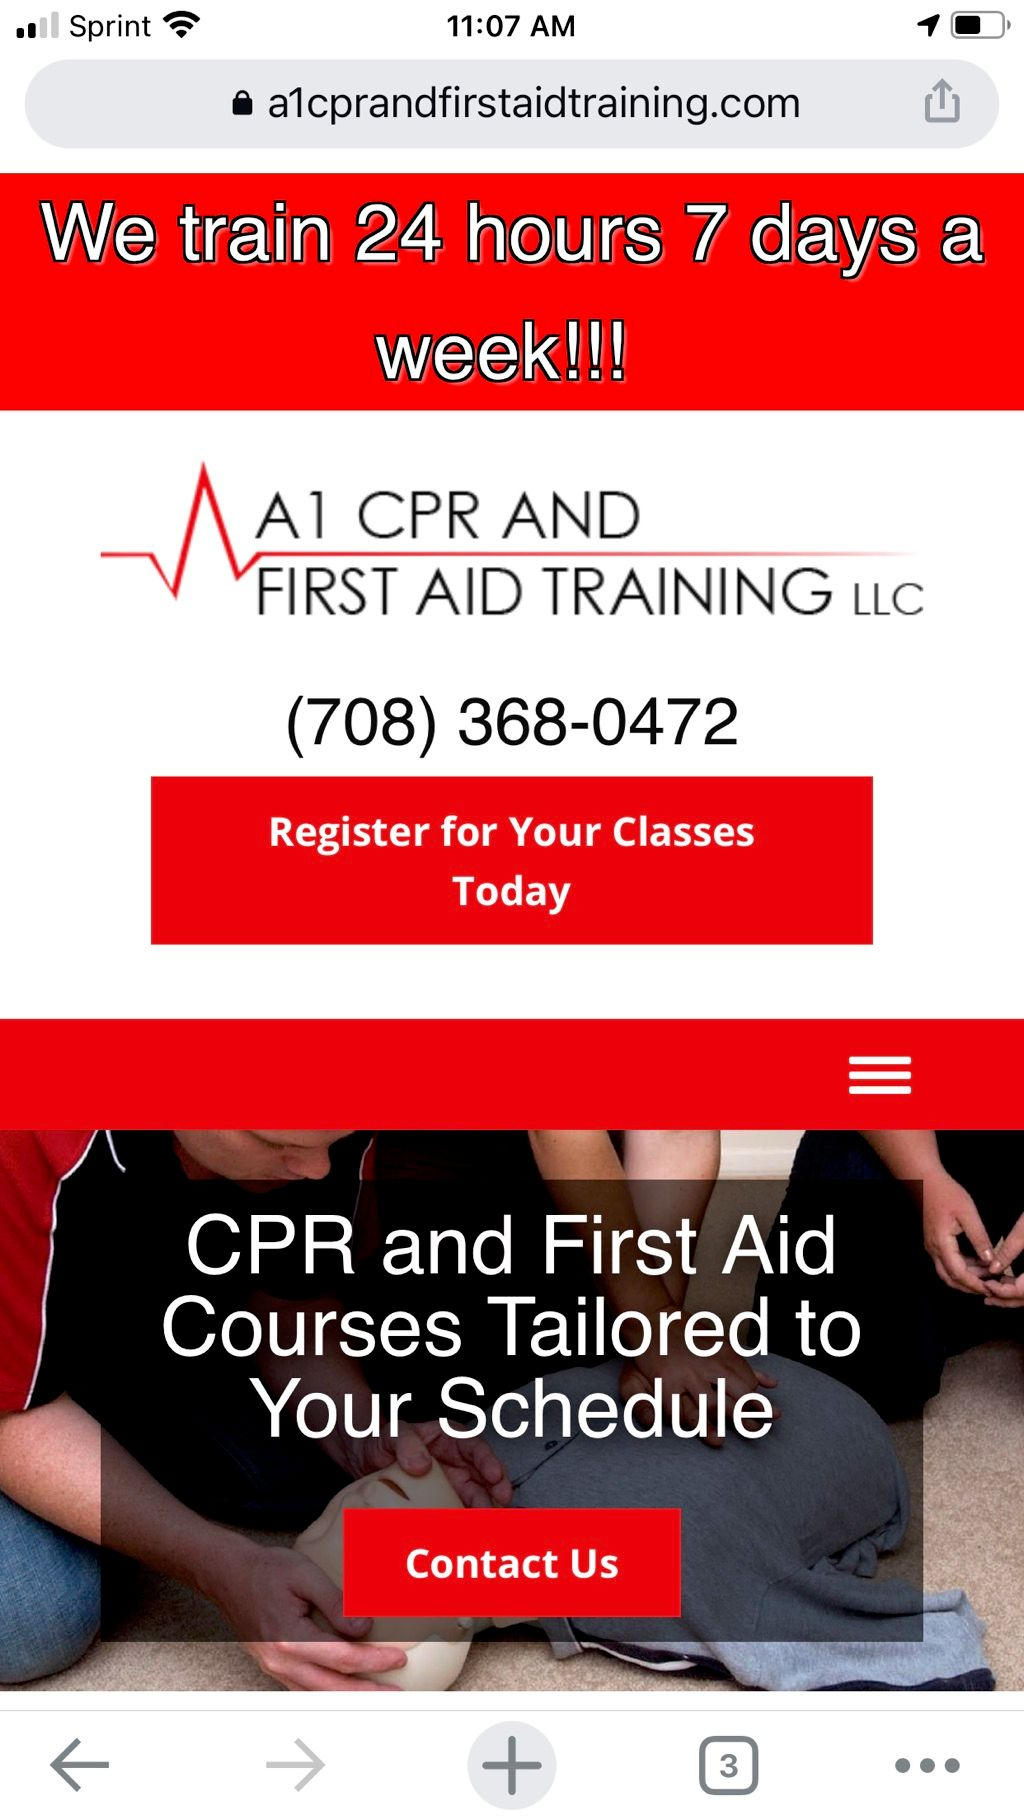 A1 CPR and First Aid Training LLC